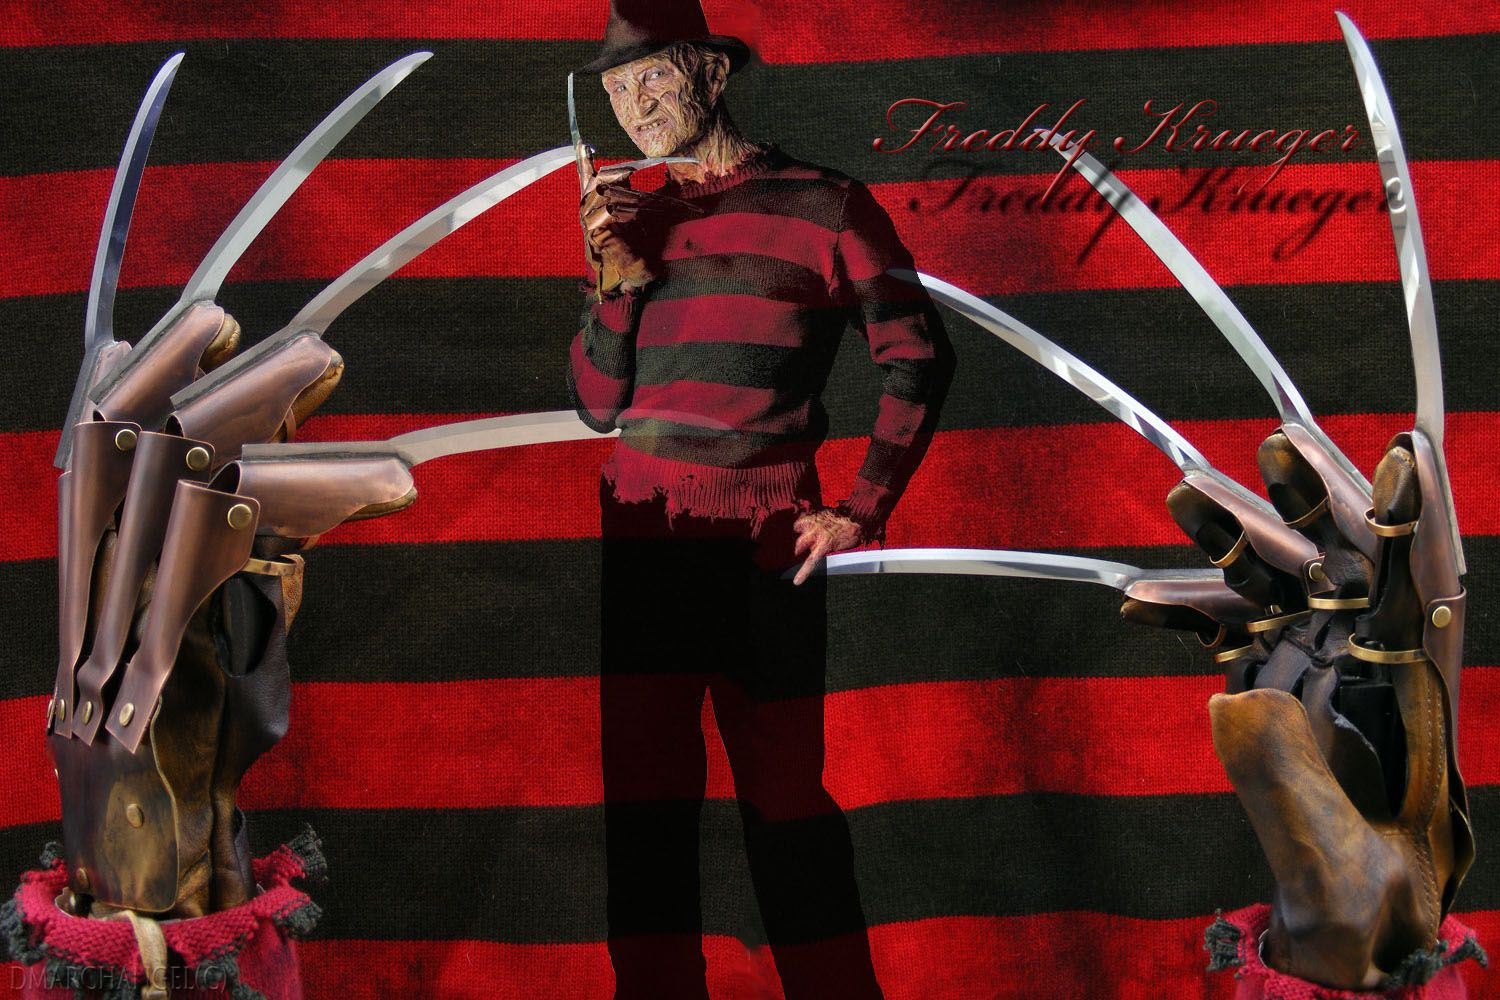 1 2 Freddy S Coming For You 3 4 Better Lock Your Door 5 6 Grab Your Crucifix 7 8 Gonna Stay Up Late 9 10 Never Sleep Again